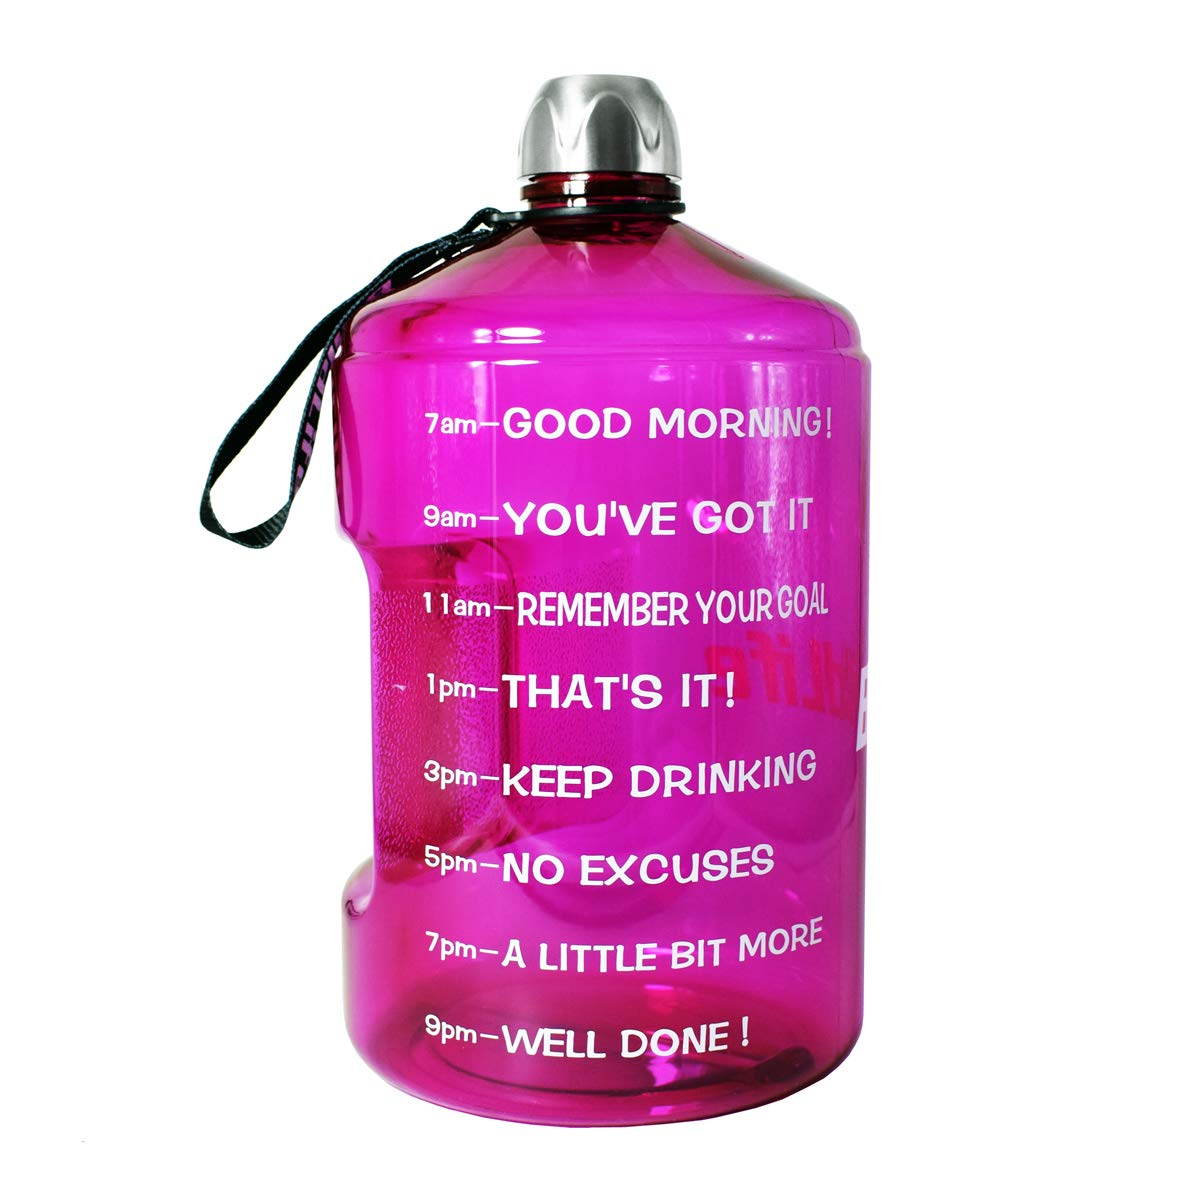 BuildLife 1 Gallon Water Bottle Motivational Fitness Workout with Time Marker  Drink More Water Daily   Clear BPA-Free   Large 128 Ounce/43OZ of Water Throughout The Day (1 Gallon-Purple, 1 Gallon)